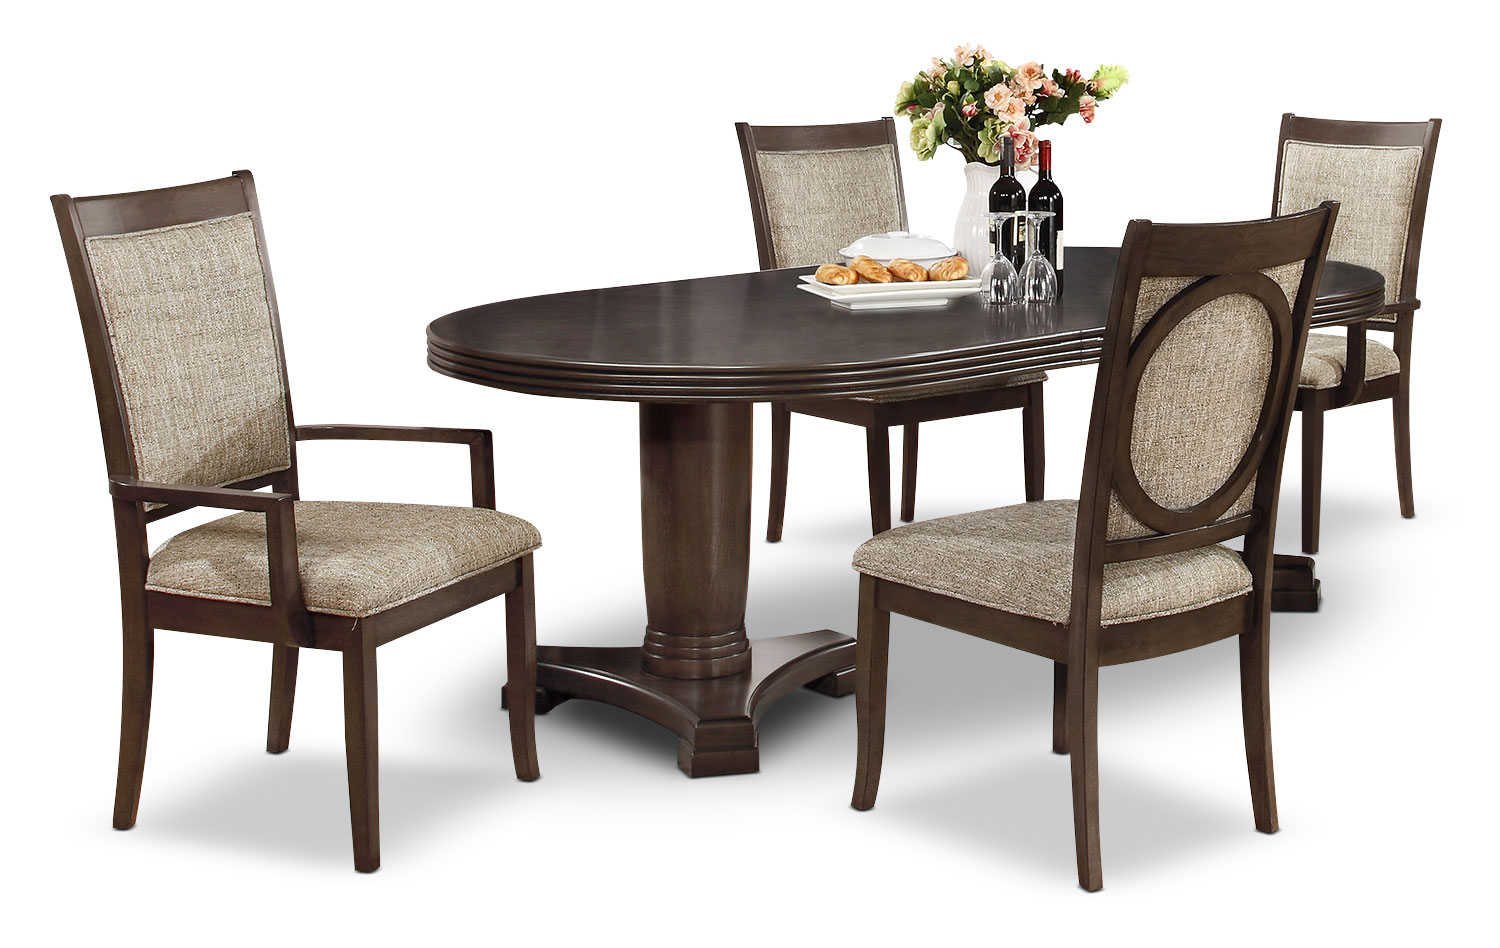 Beaumont 5-Piece Dining Package